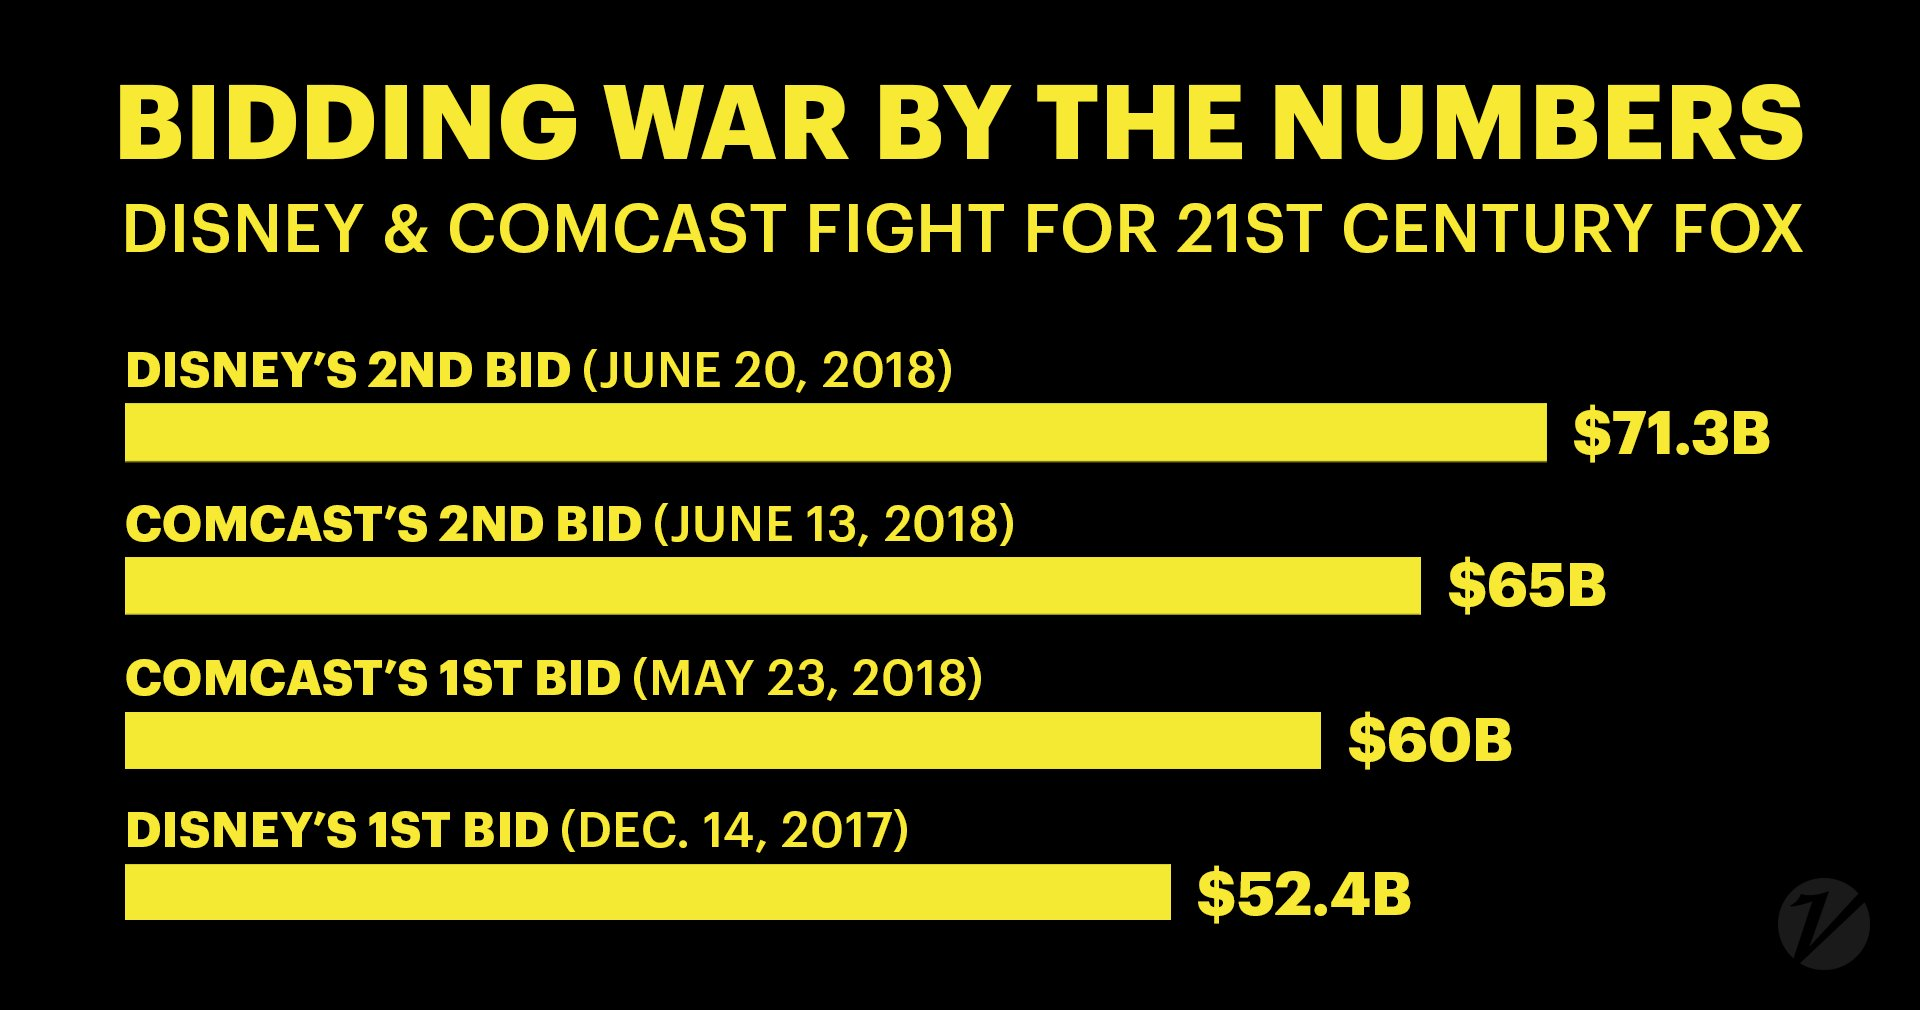 Disney counter-punches Comcast with a $71.3 billion bid for Fox assets https://t.co/NpT3HMTL2l https://t.co/0tPmwLYsOz